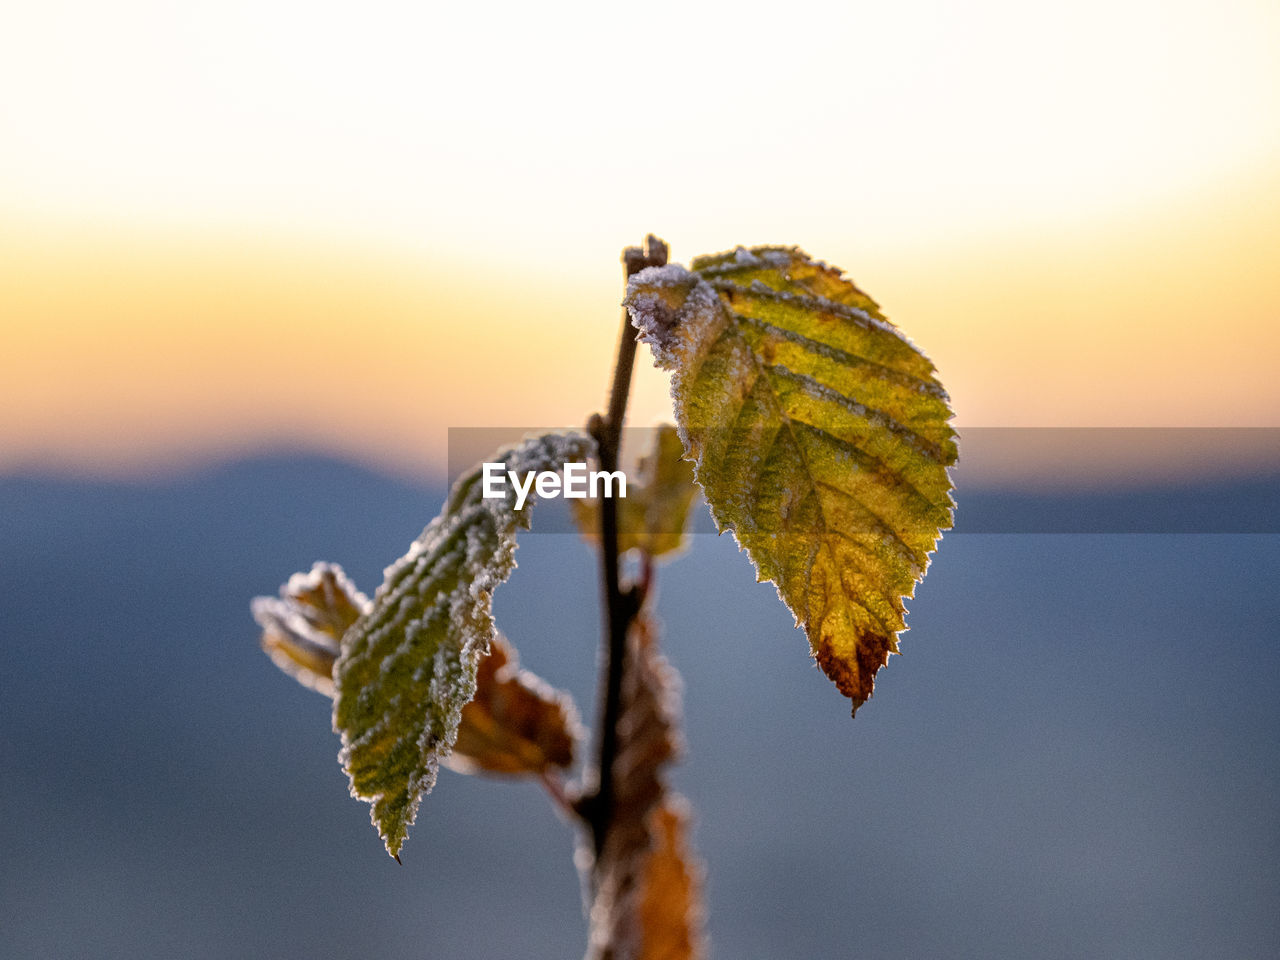 Close-up of leaves on plant against sky during sunset